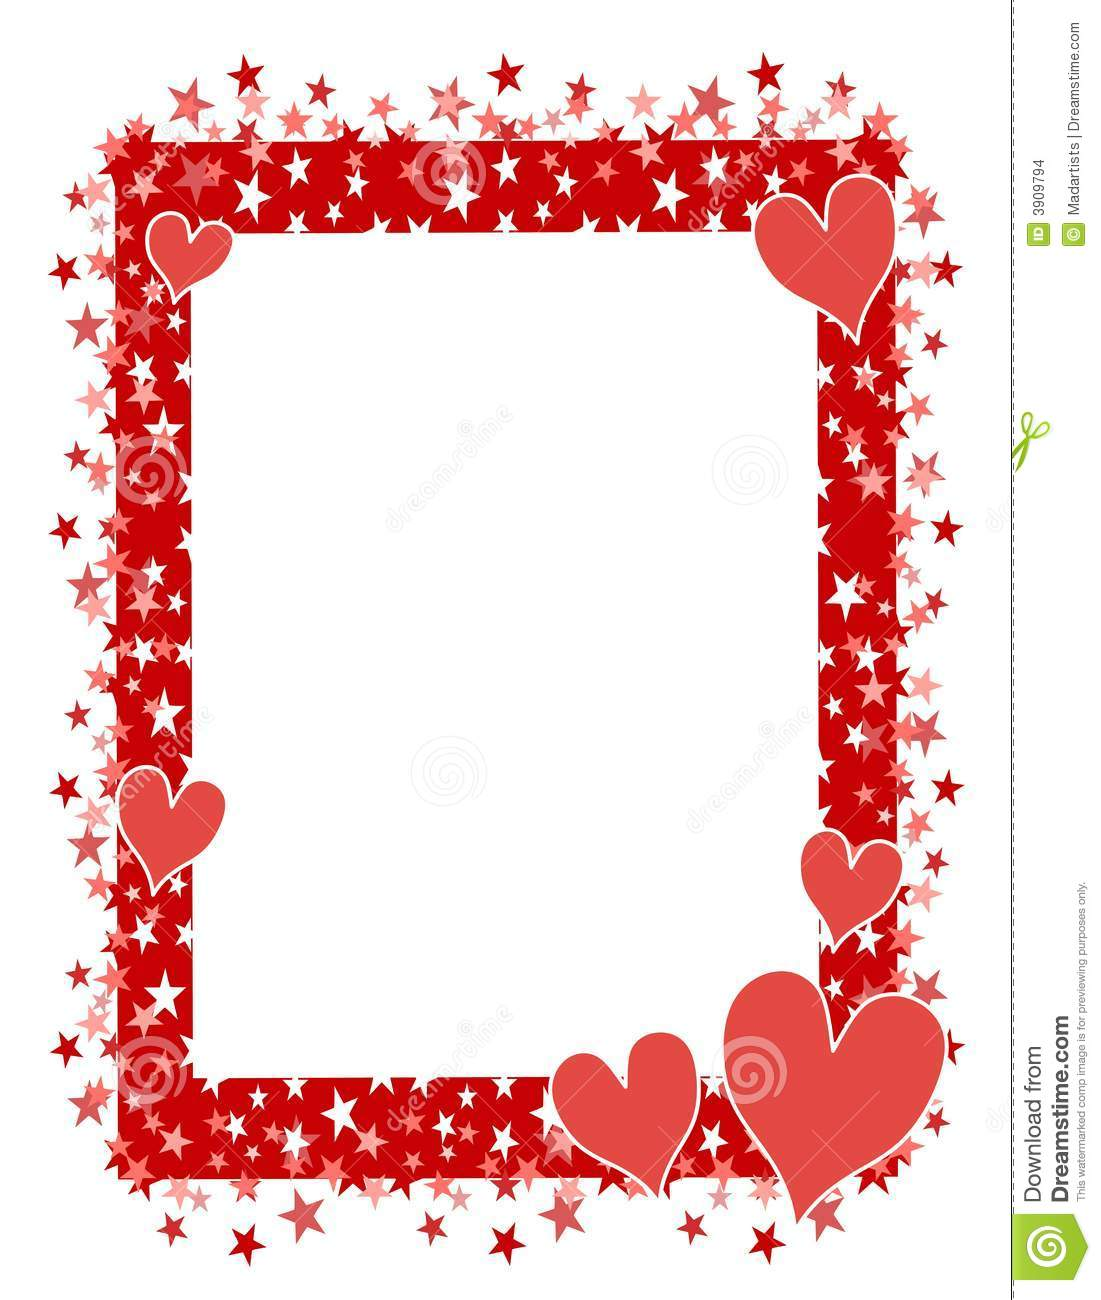 Red Hearts Stars Frame or Border 2